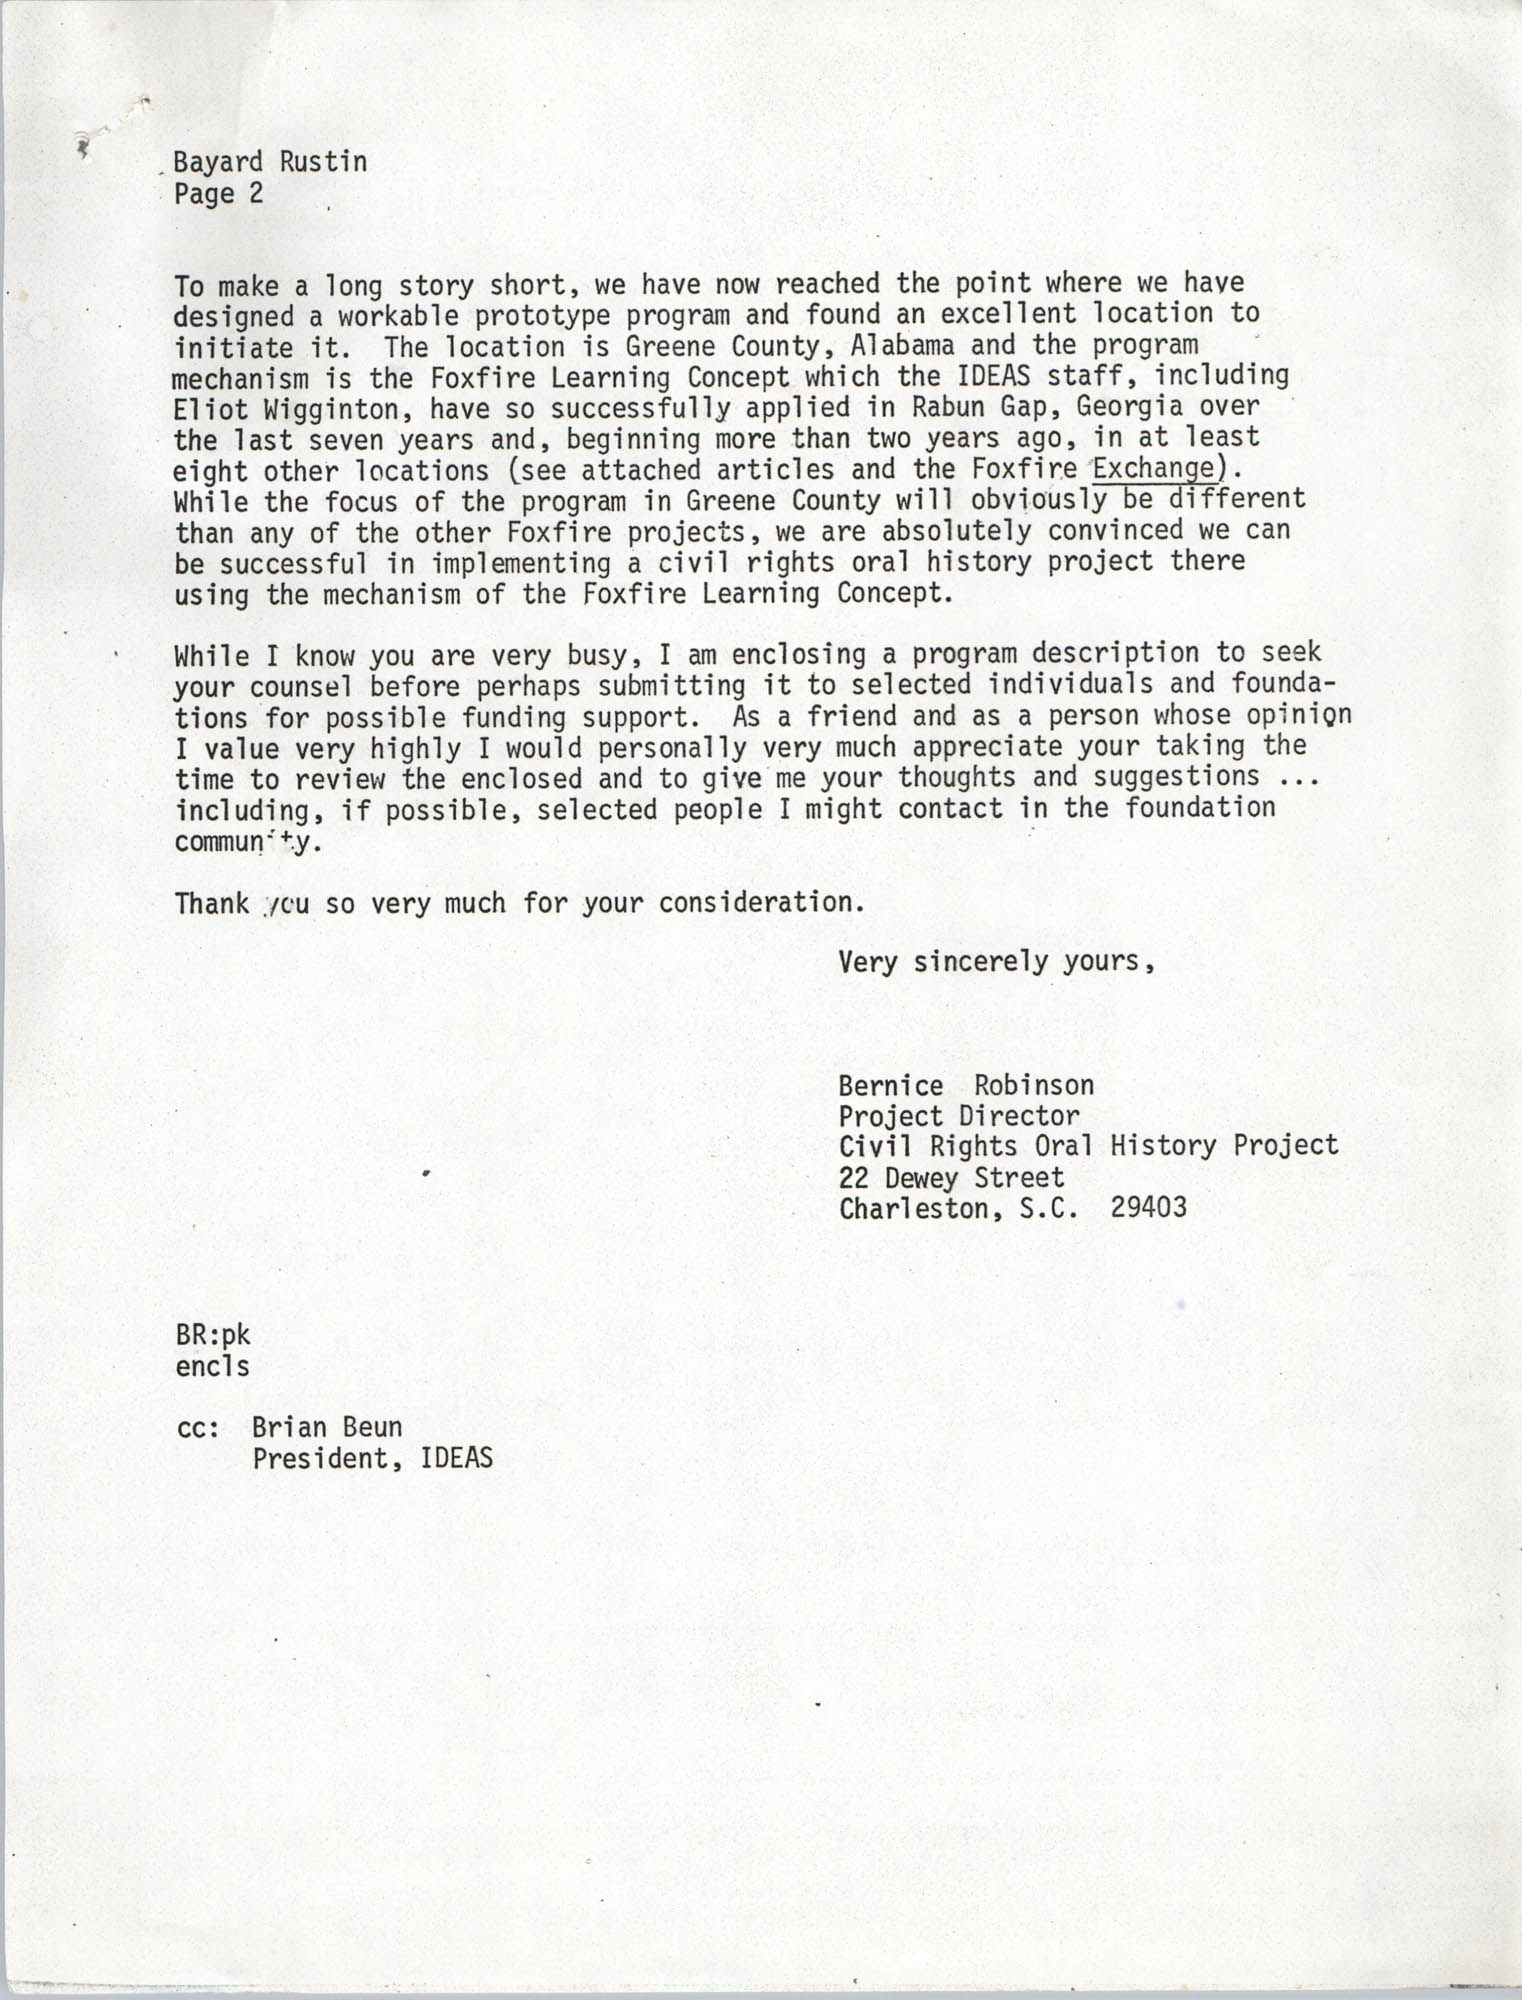 Letter from Bernice Robinson to Bayard Rustin, May 8, 1973, Page 2